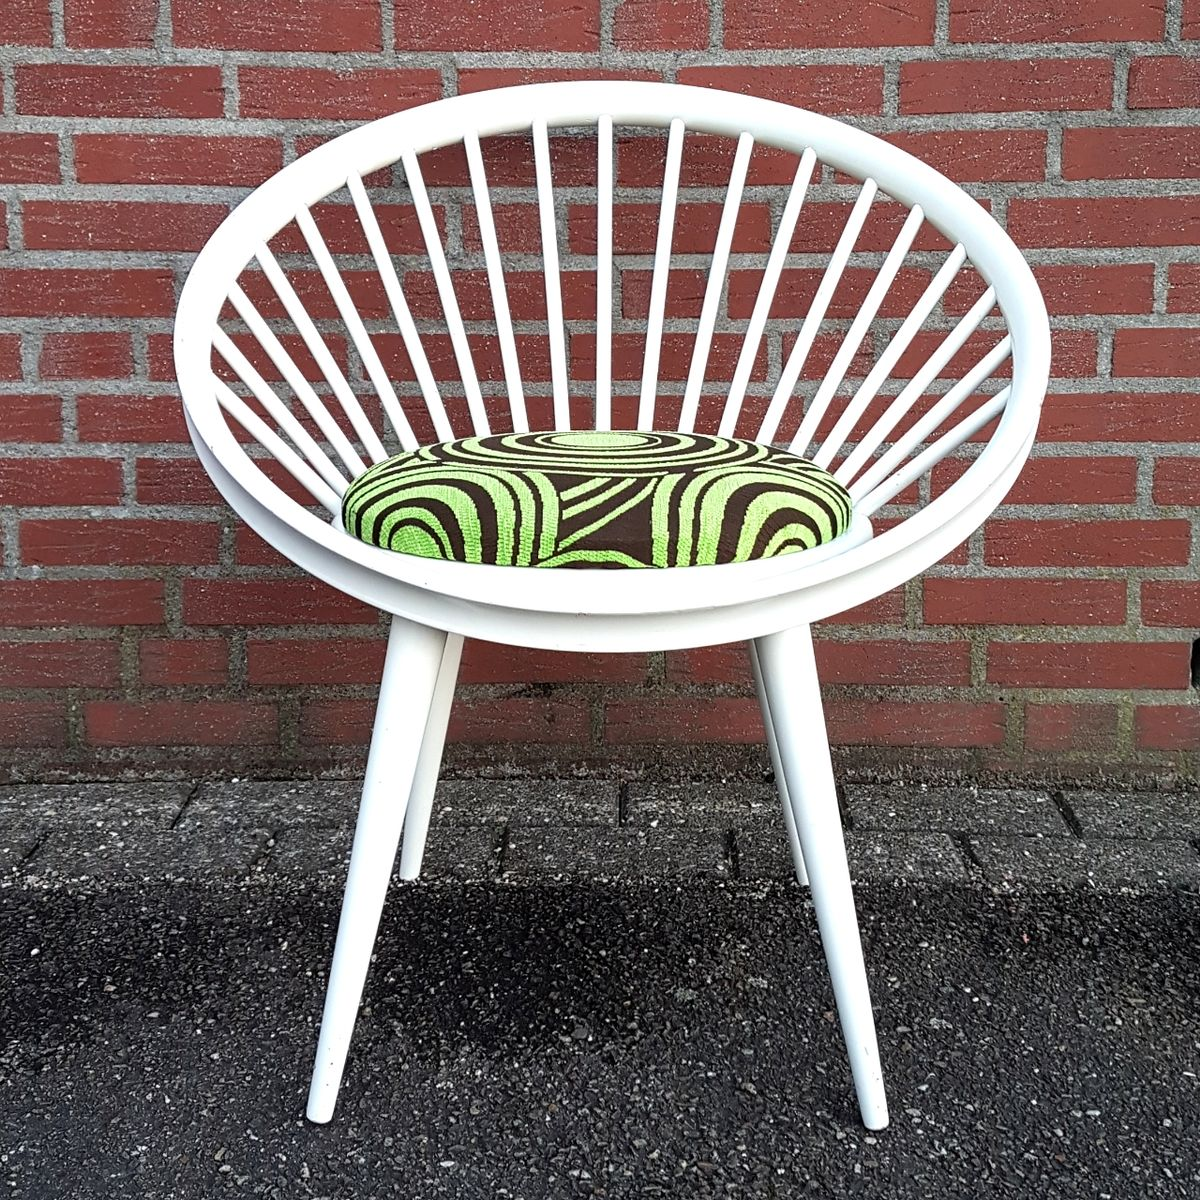 Circle Chair by Yngve Ekström for Swedese, 1958 for sale at Pamono